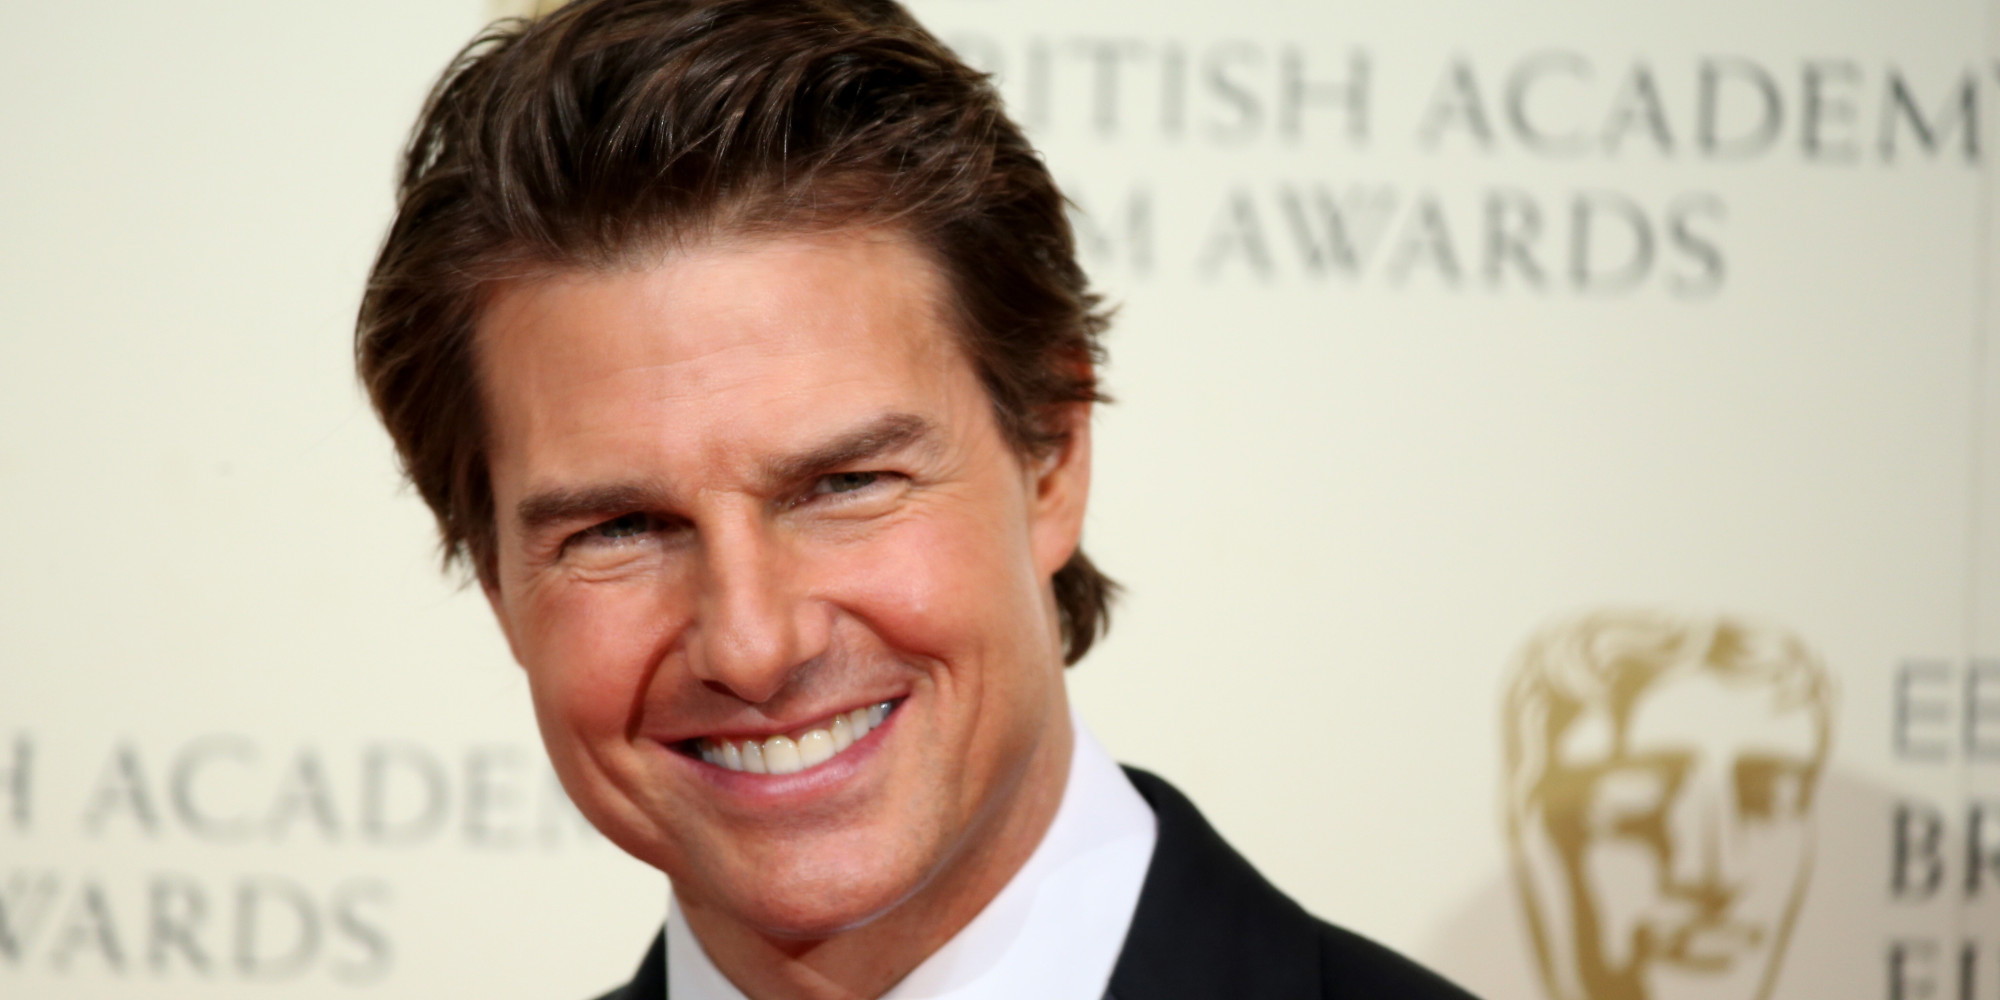 Photo of 10 Amazing Facts About Tom Cruise You May Not Know